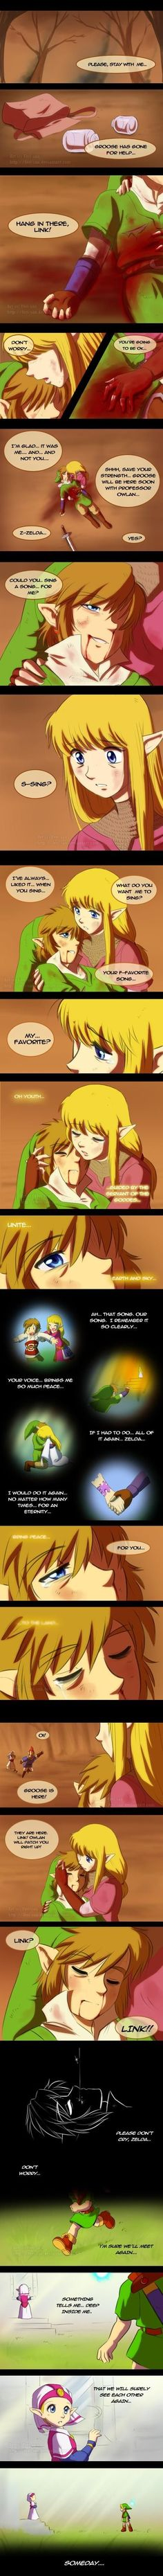 I don't even know anything about LoZ, but this made me cry. TT-TT